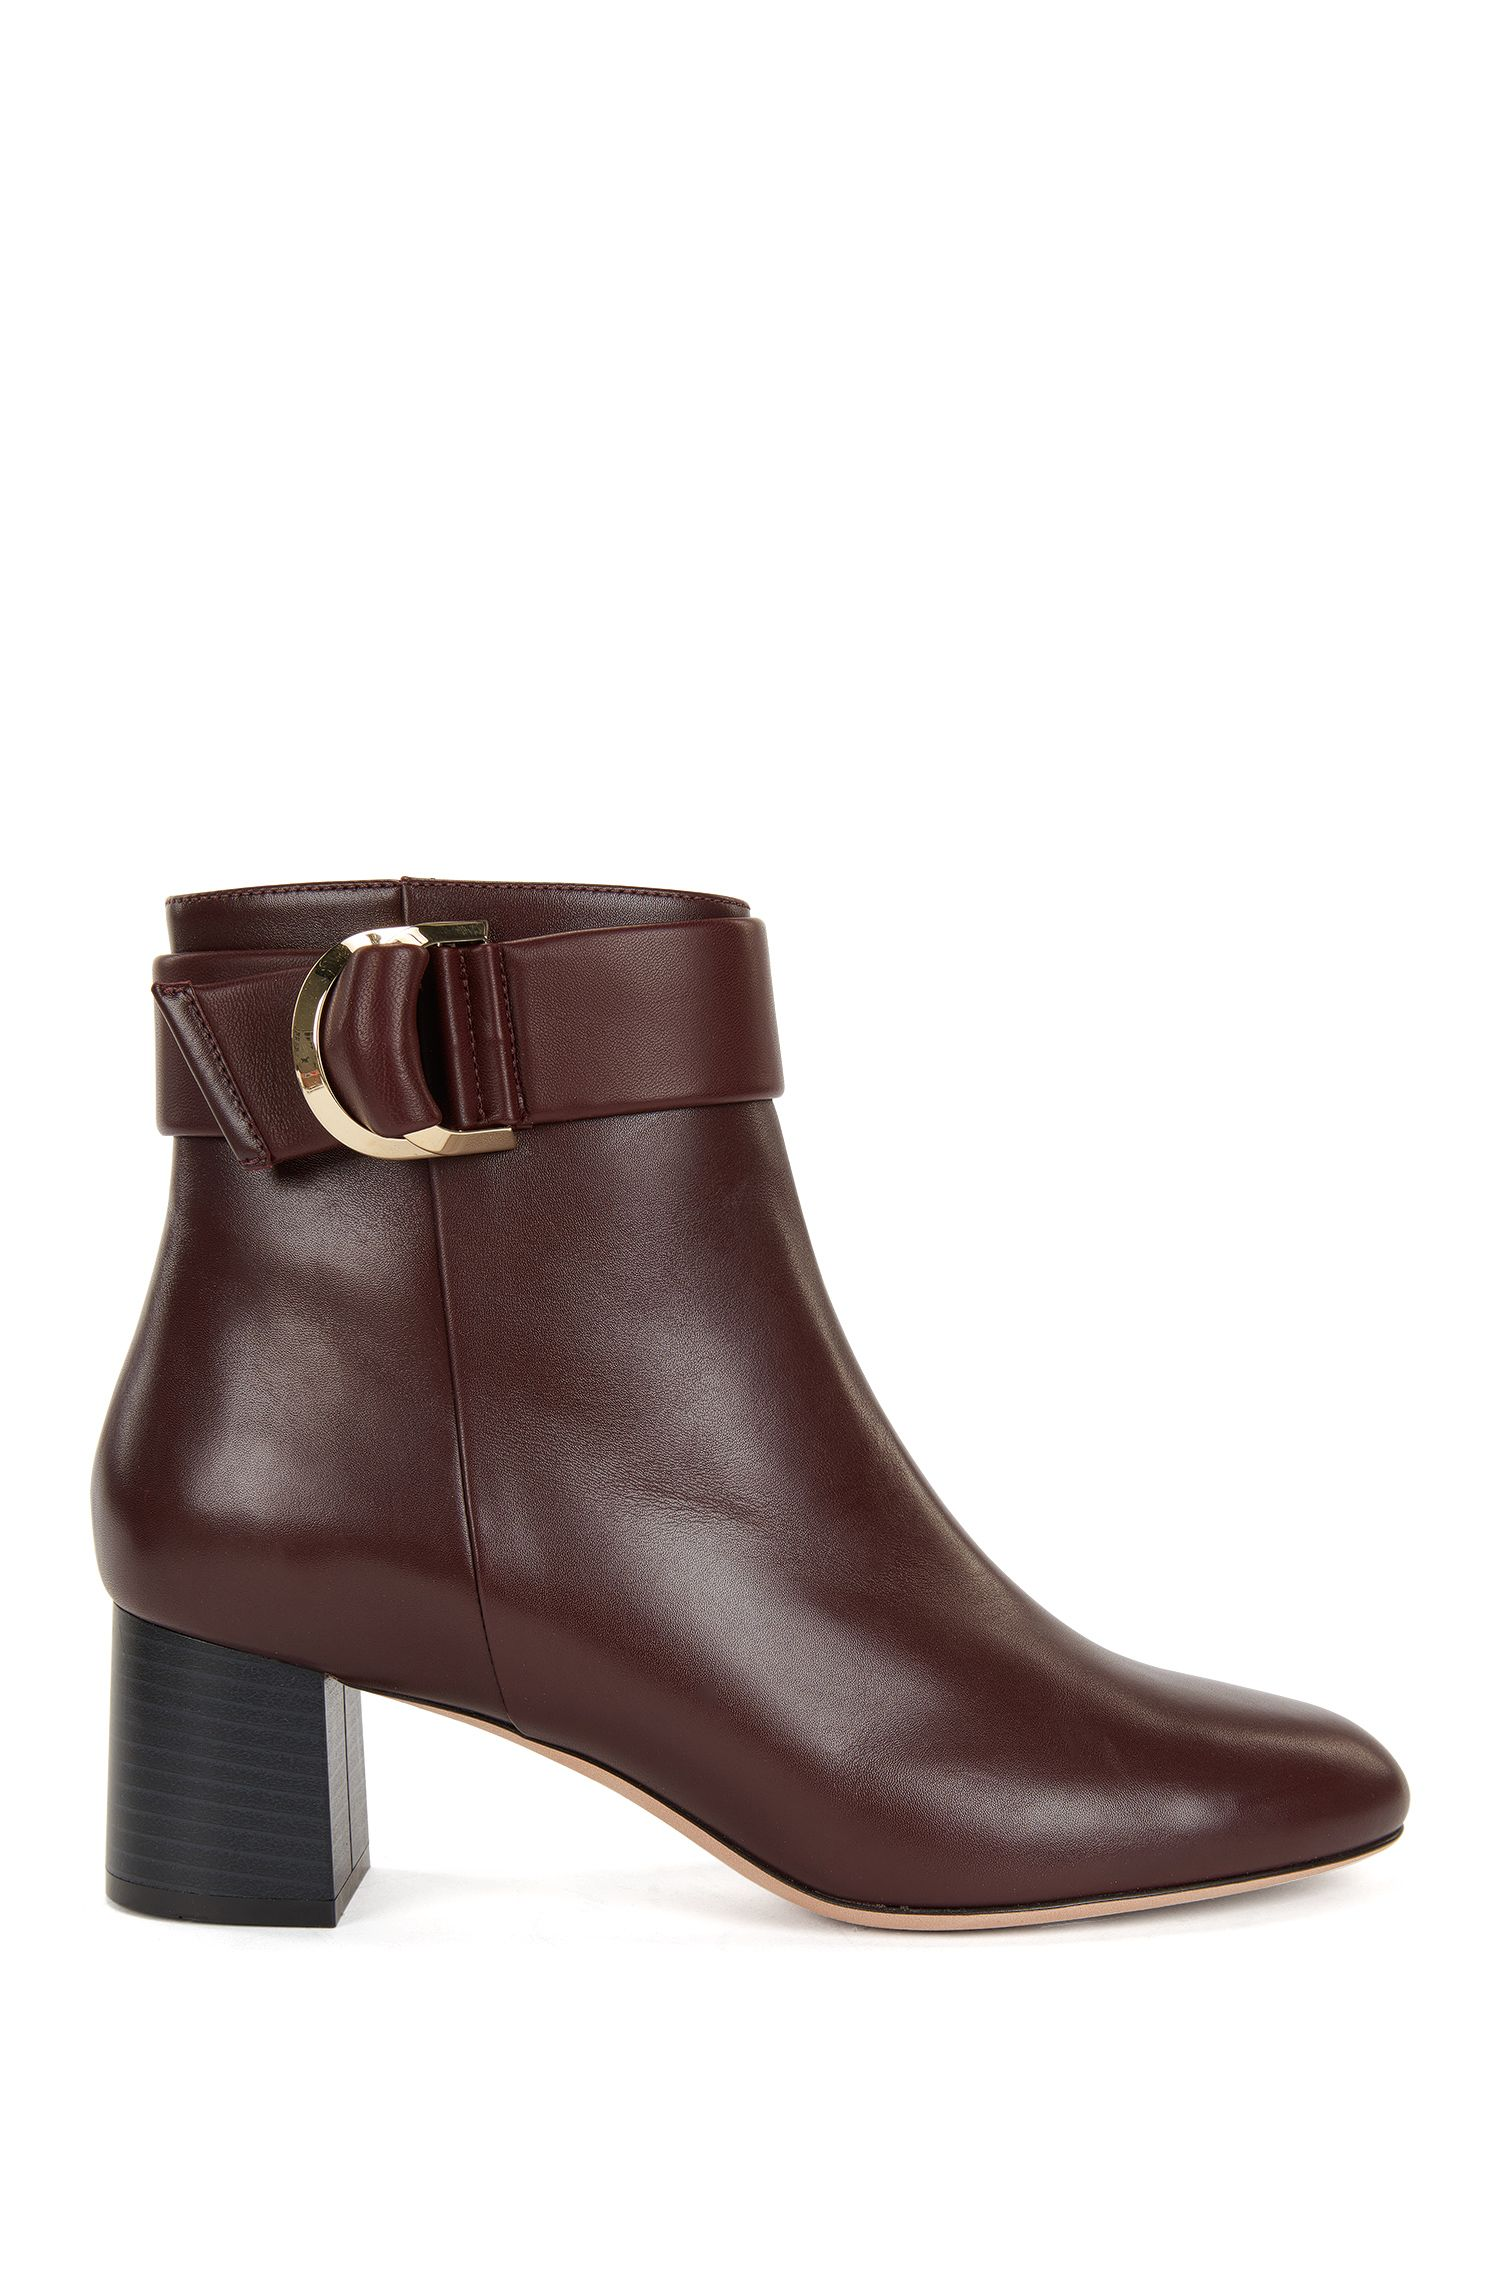 Leather ankle boots with double-ring belt detail